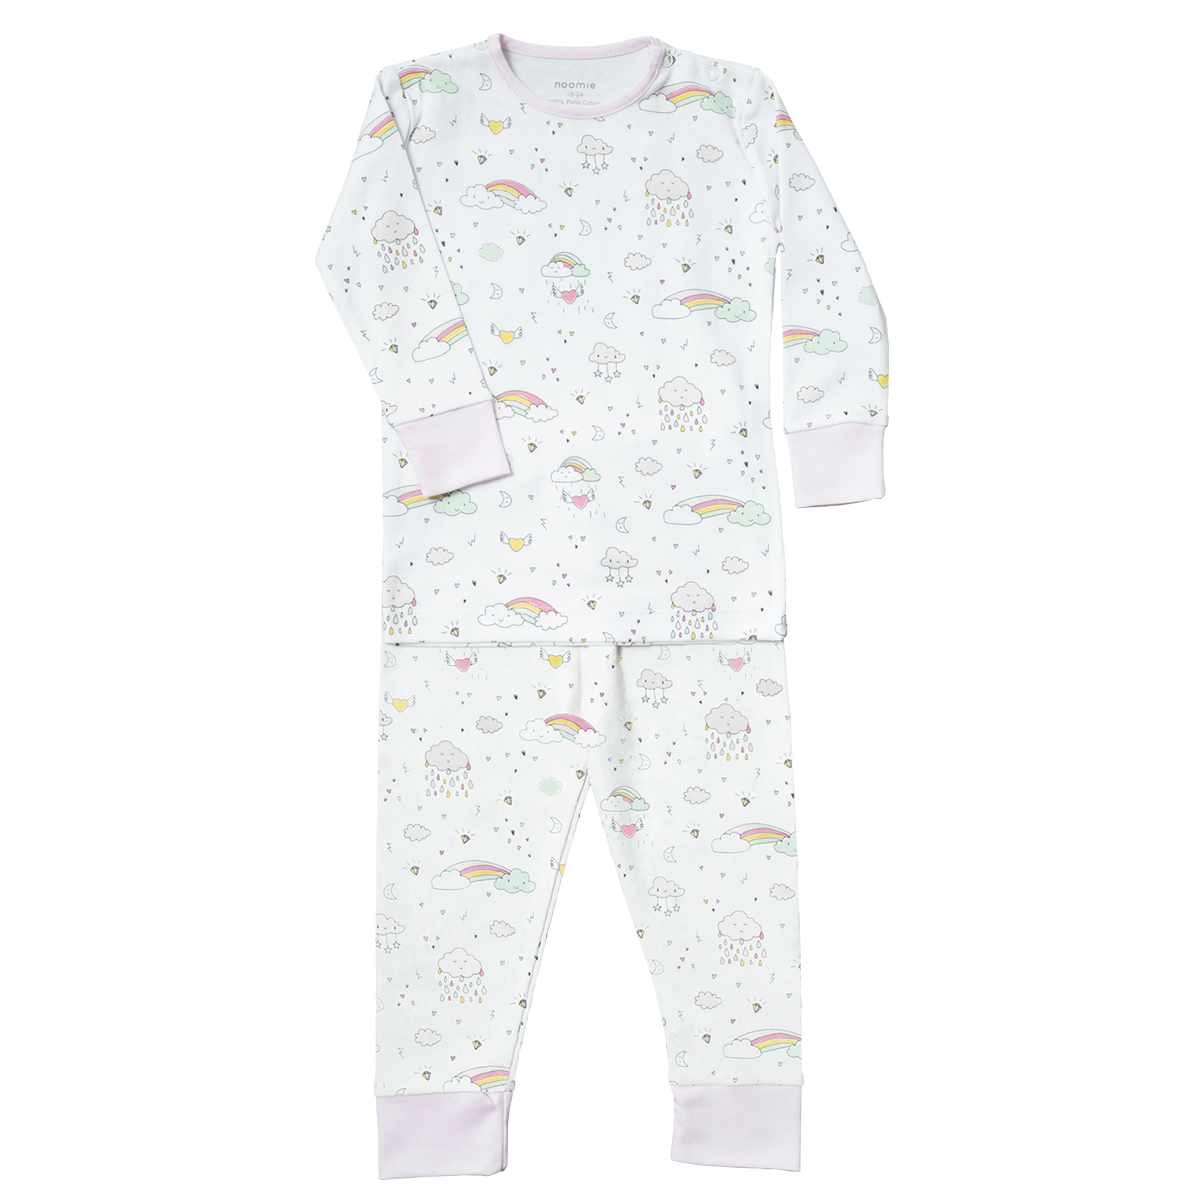 Baby Noomie Two Piece PJ - Rainbows